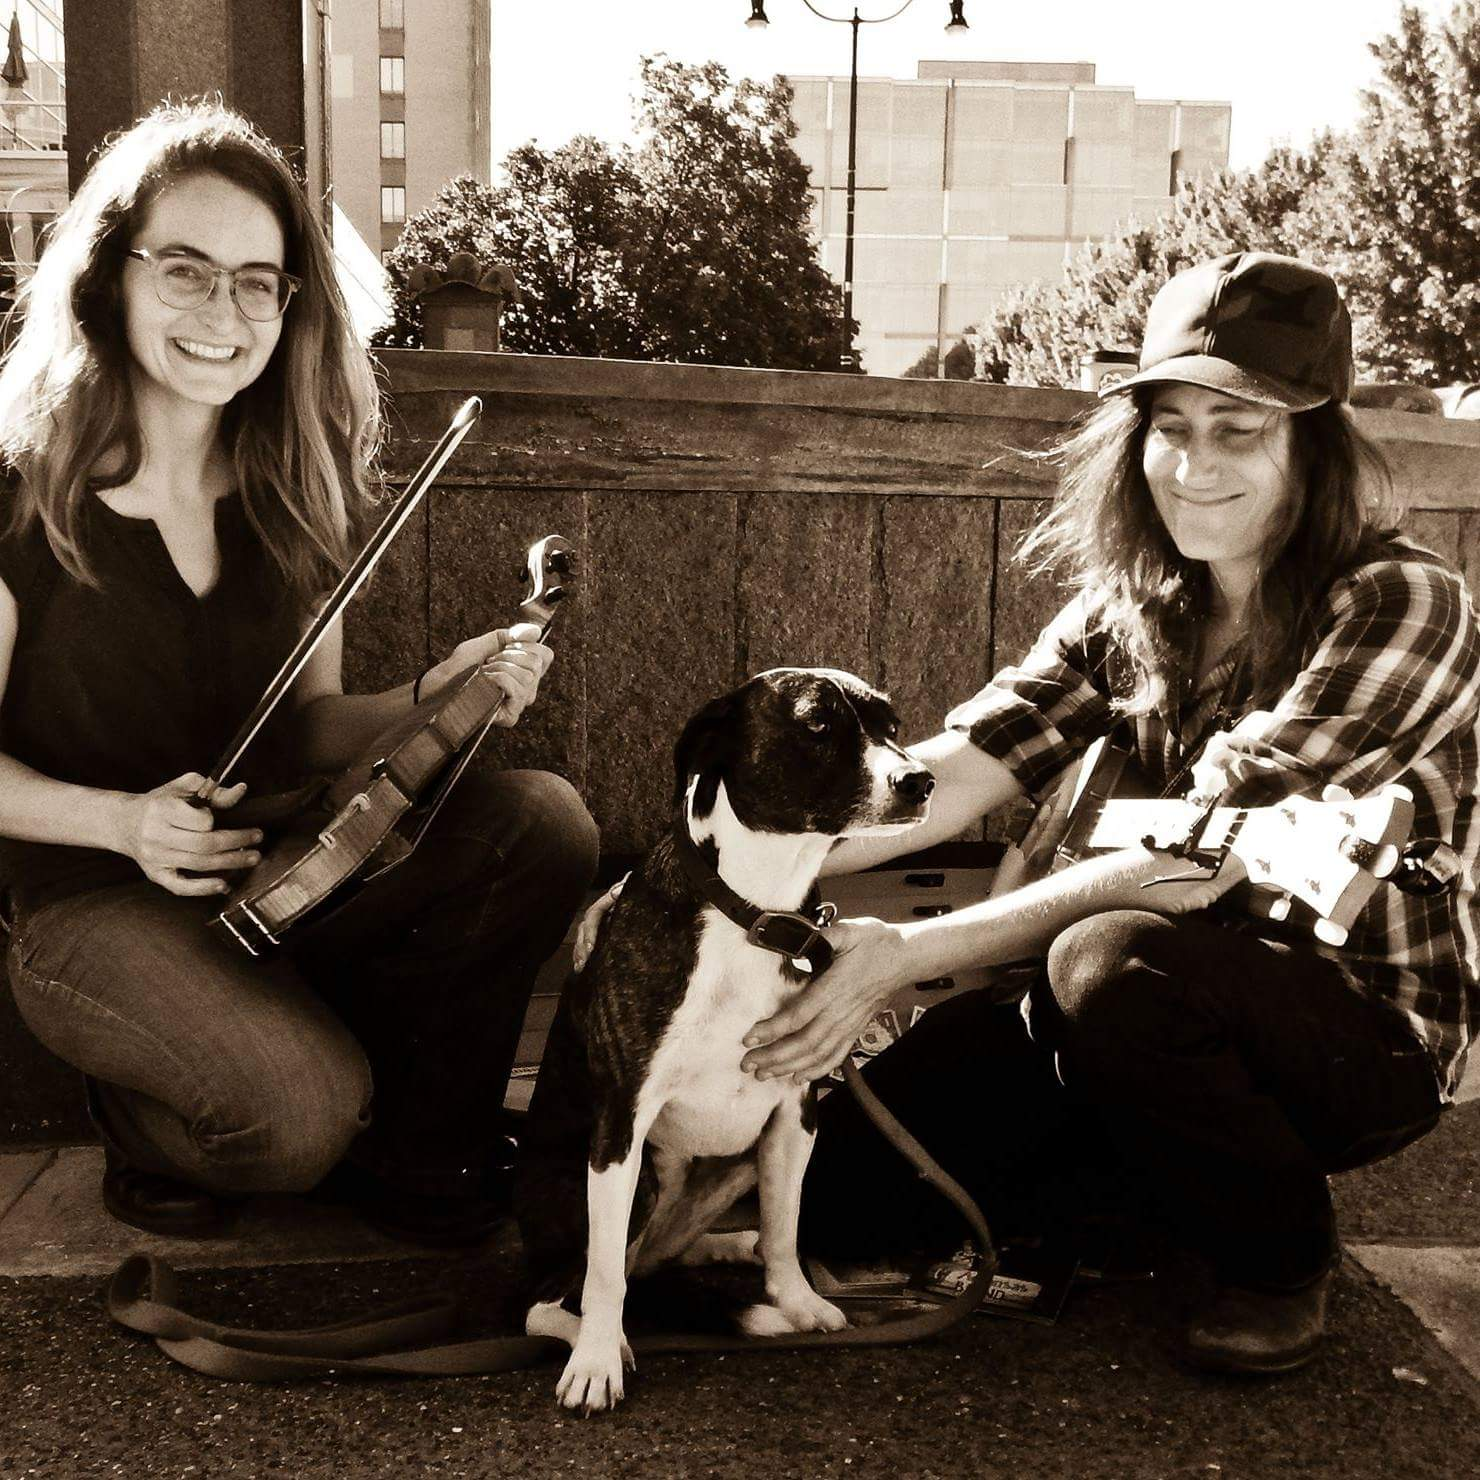 The Buffalo Gals - The Buffalo Gals (Austin, TX) feature Rebecca Patek and Melissa Carper, who will whisk you away to a saloon in the Wild West with their tender and gently wavering